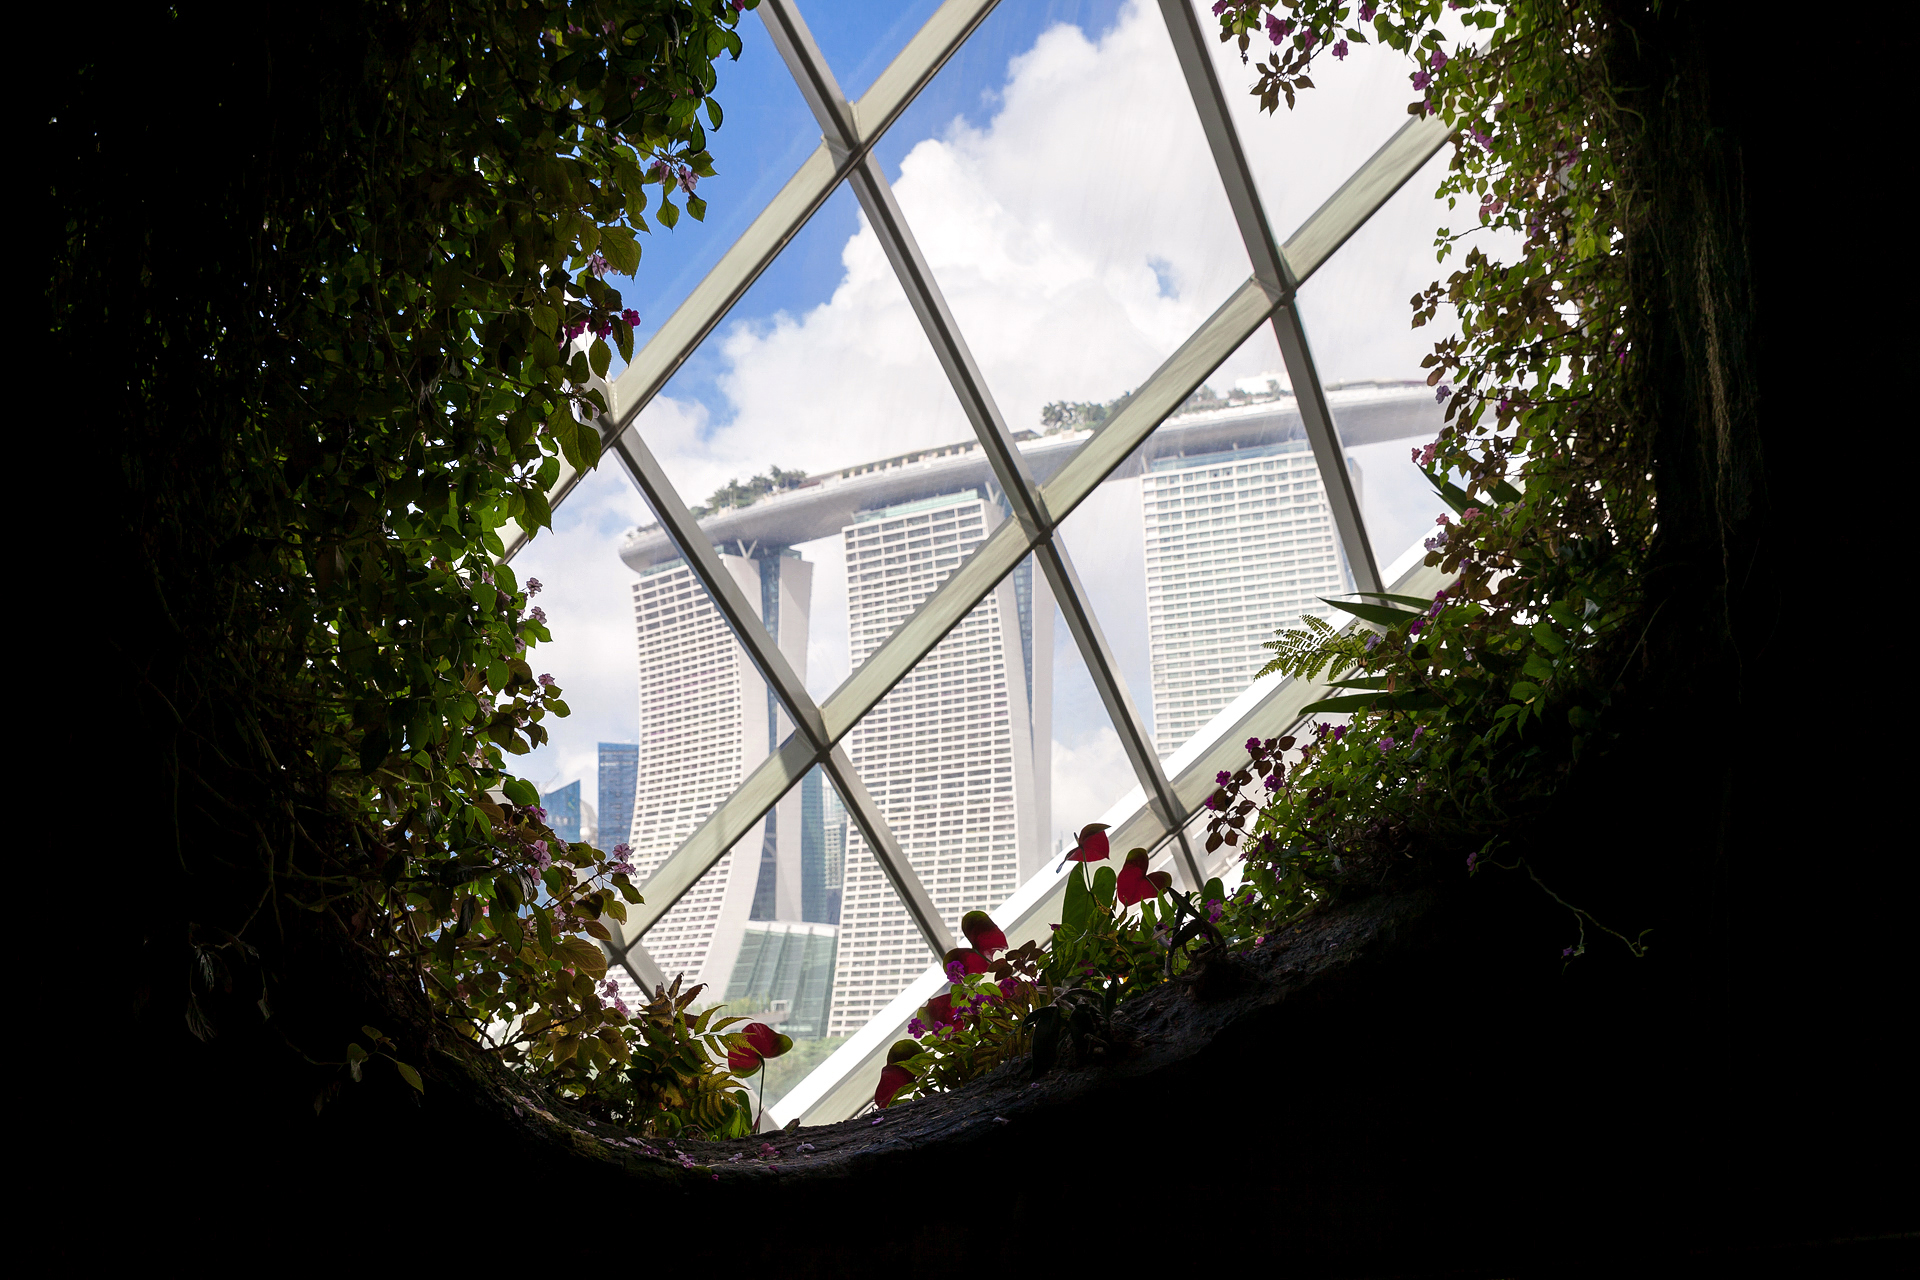 Gardens by the bay dome Singapore